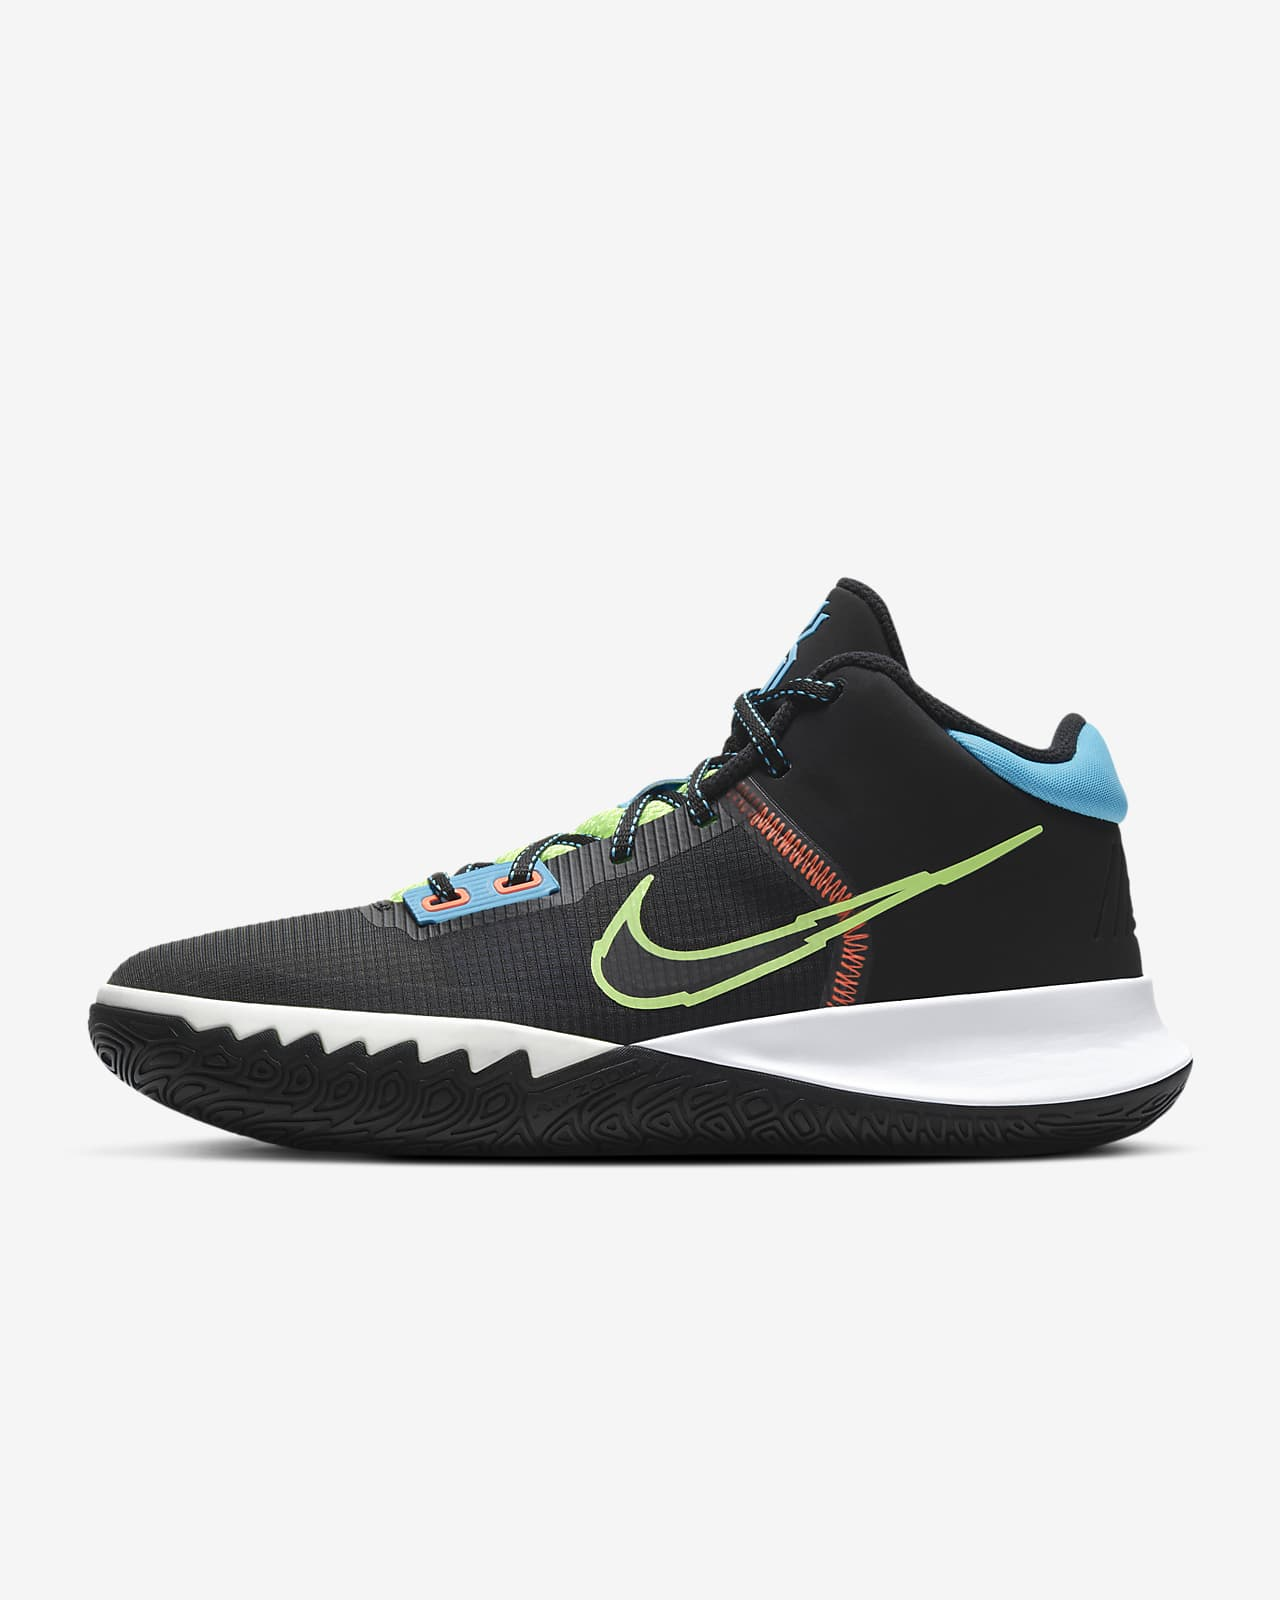 Kyrie Flytrap 4 Basketball Shoe